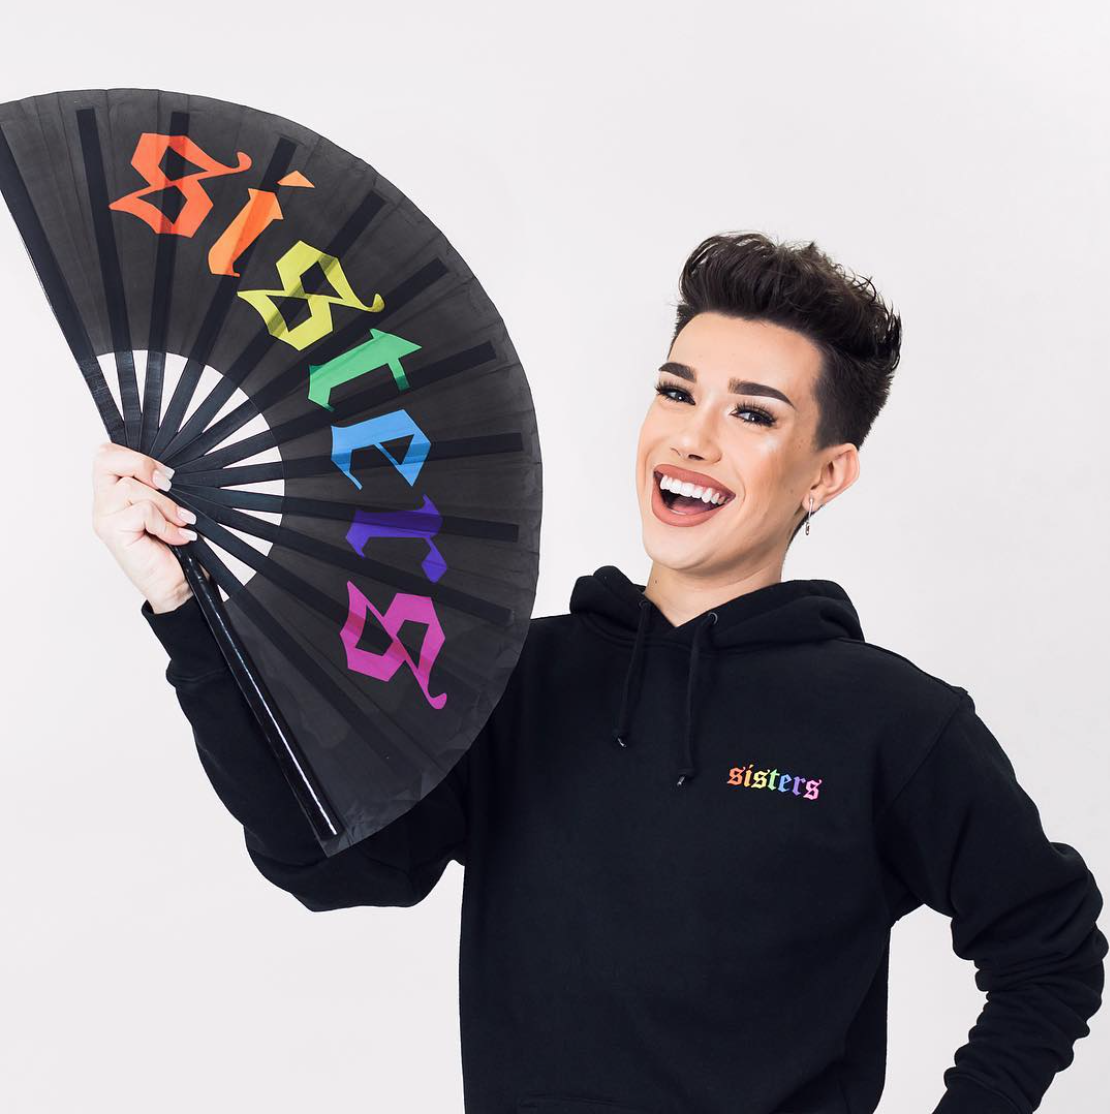 c5d5b4adf James Charles releases new Artistry apparel collection